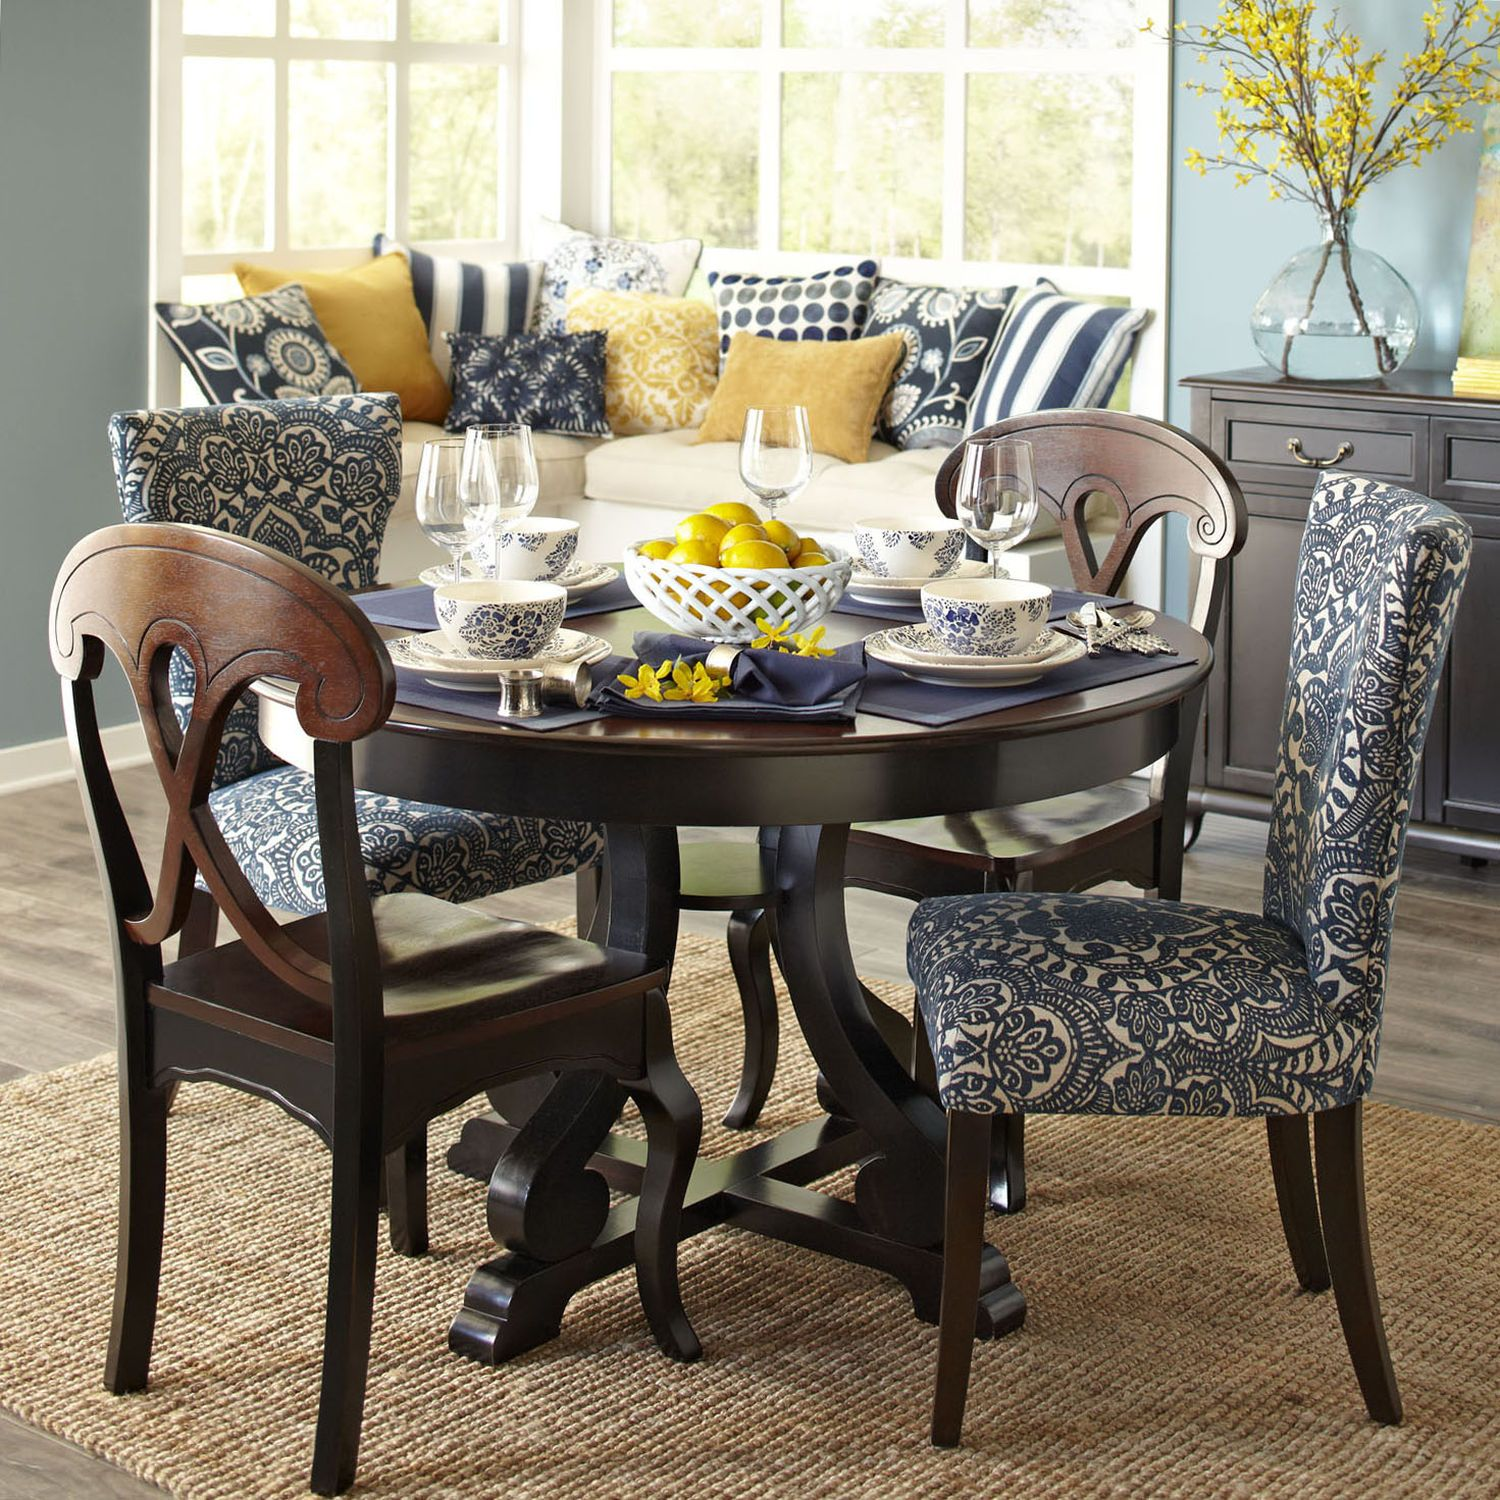 Marchella Dining Room Set Rubbed Black Pier 1 Imports Dining